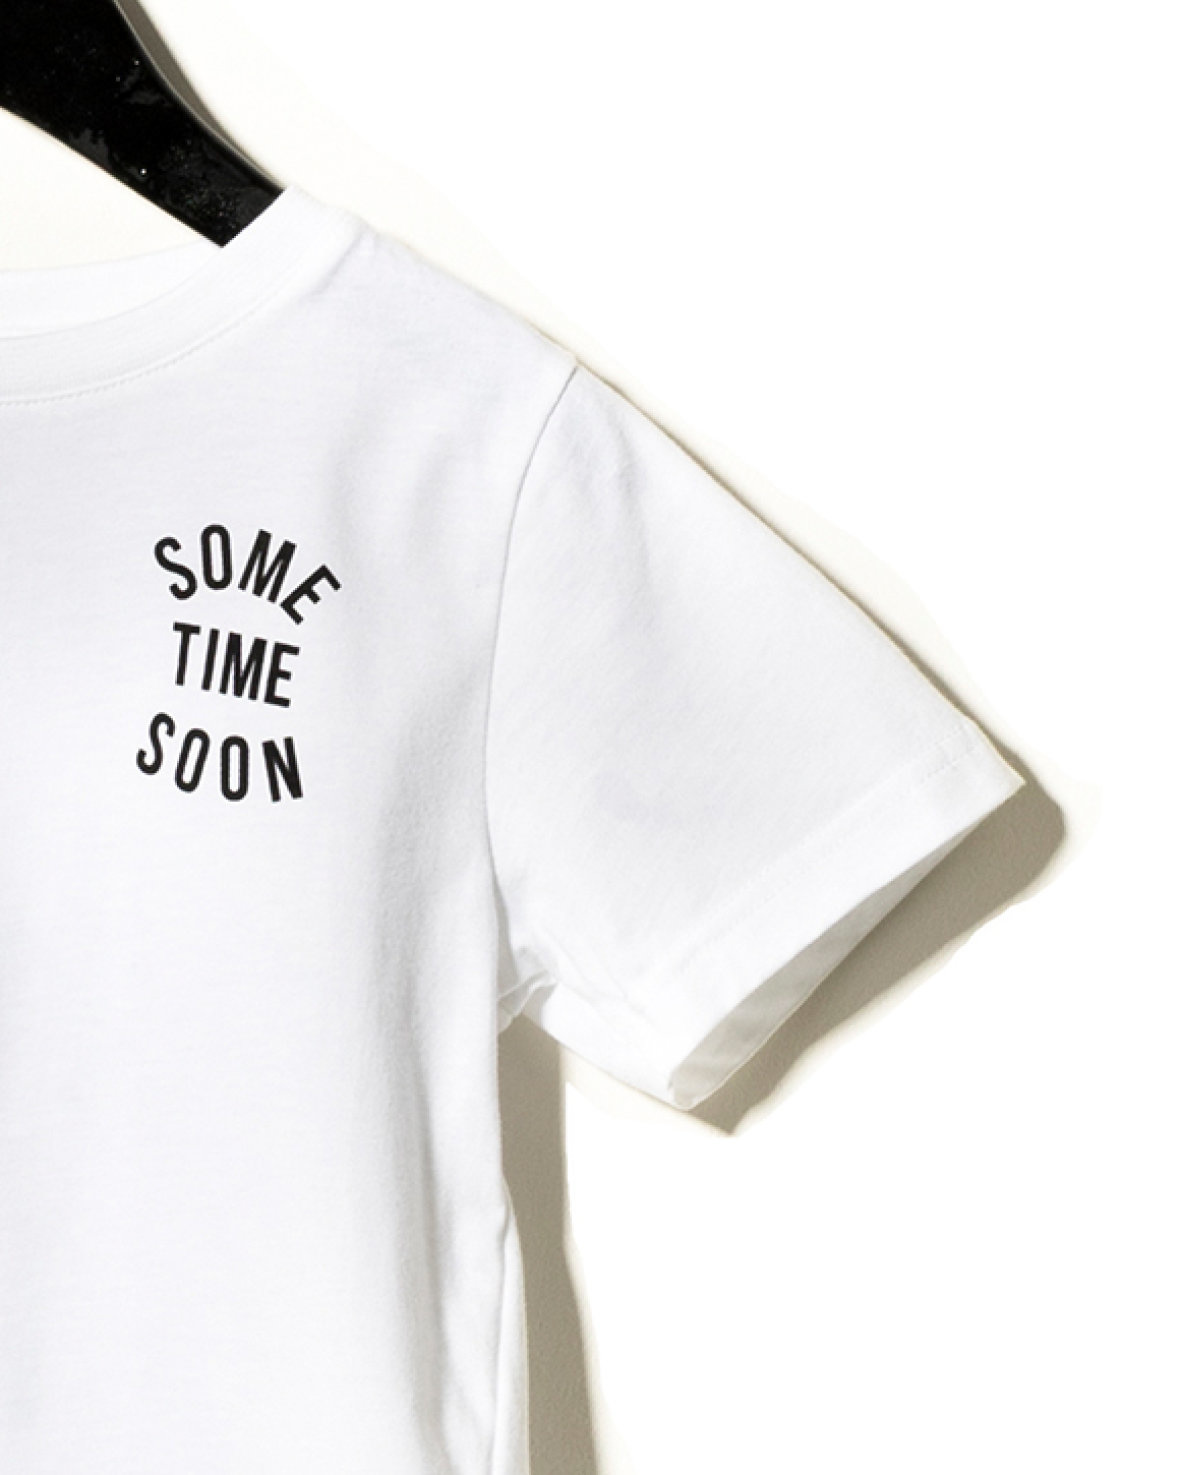 Sometime Soon Official WIT STATEMENT T-SHIRT | STREETWEAR KINDERKLEDING | SOMETIME SOON